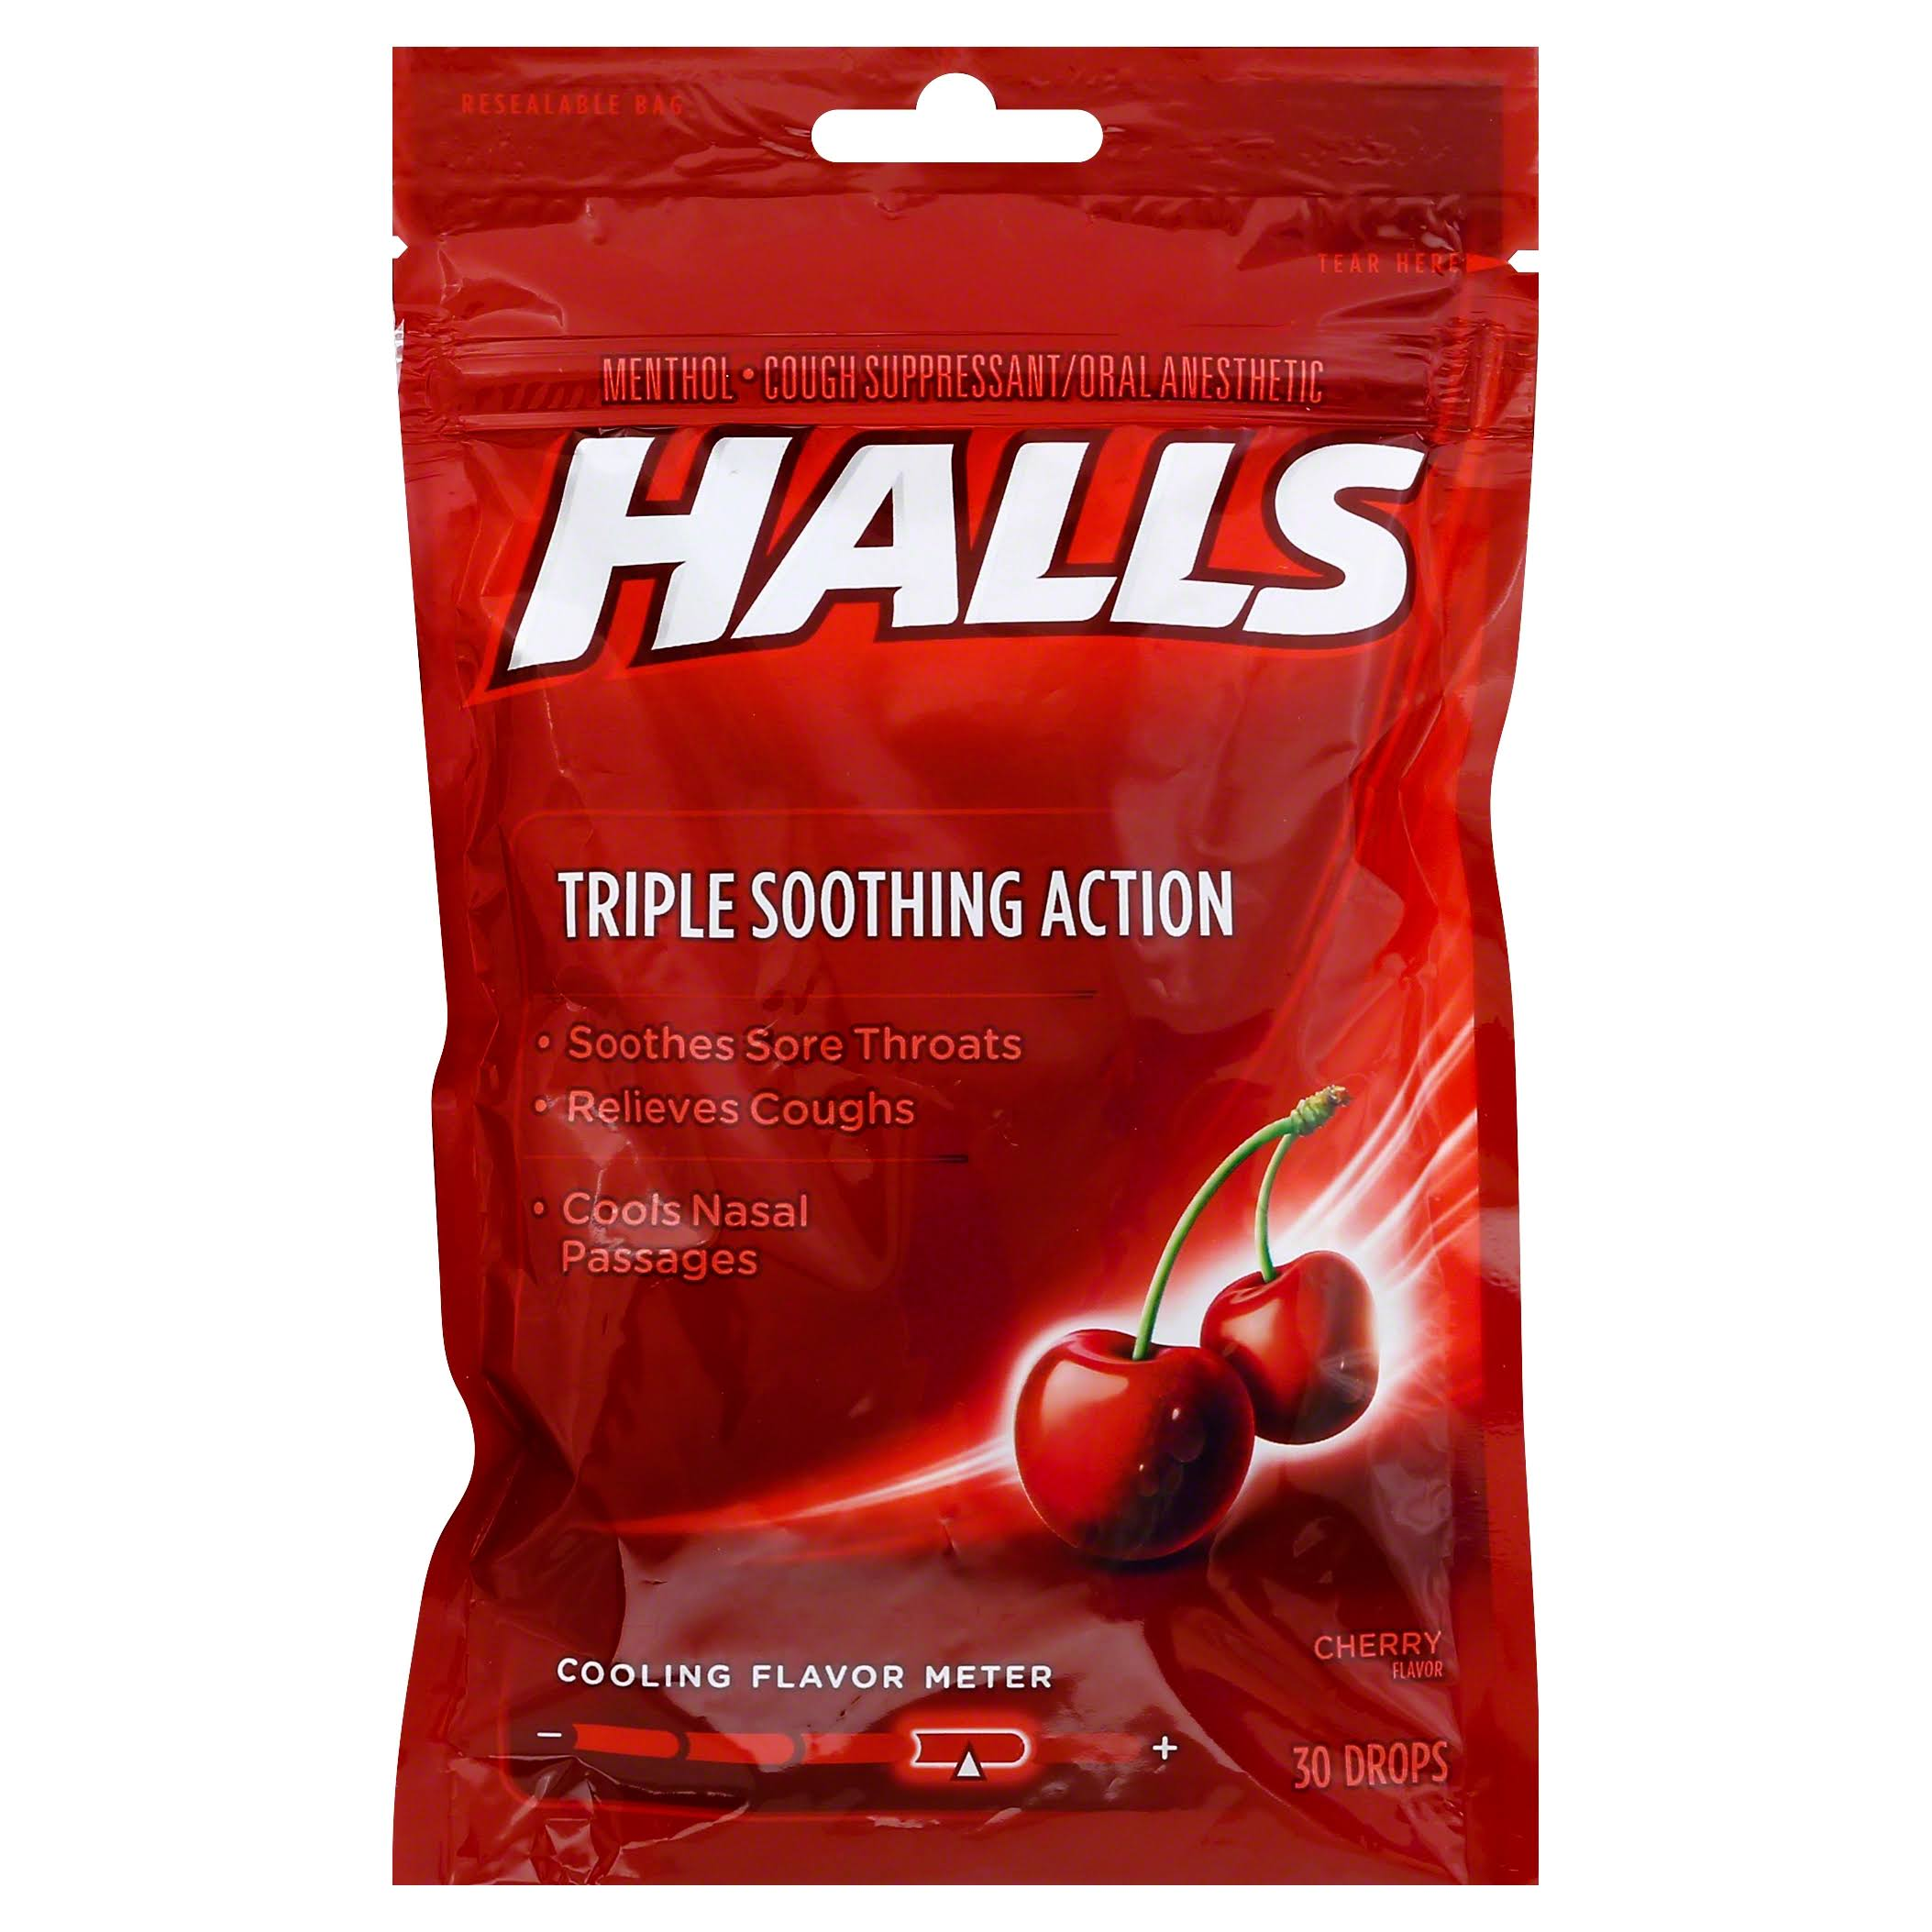 Halls Cough Suppressant Oral Anesthetic Menthol Drops - Cherry, 30ct